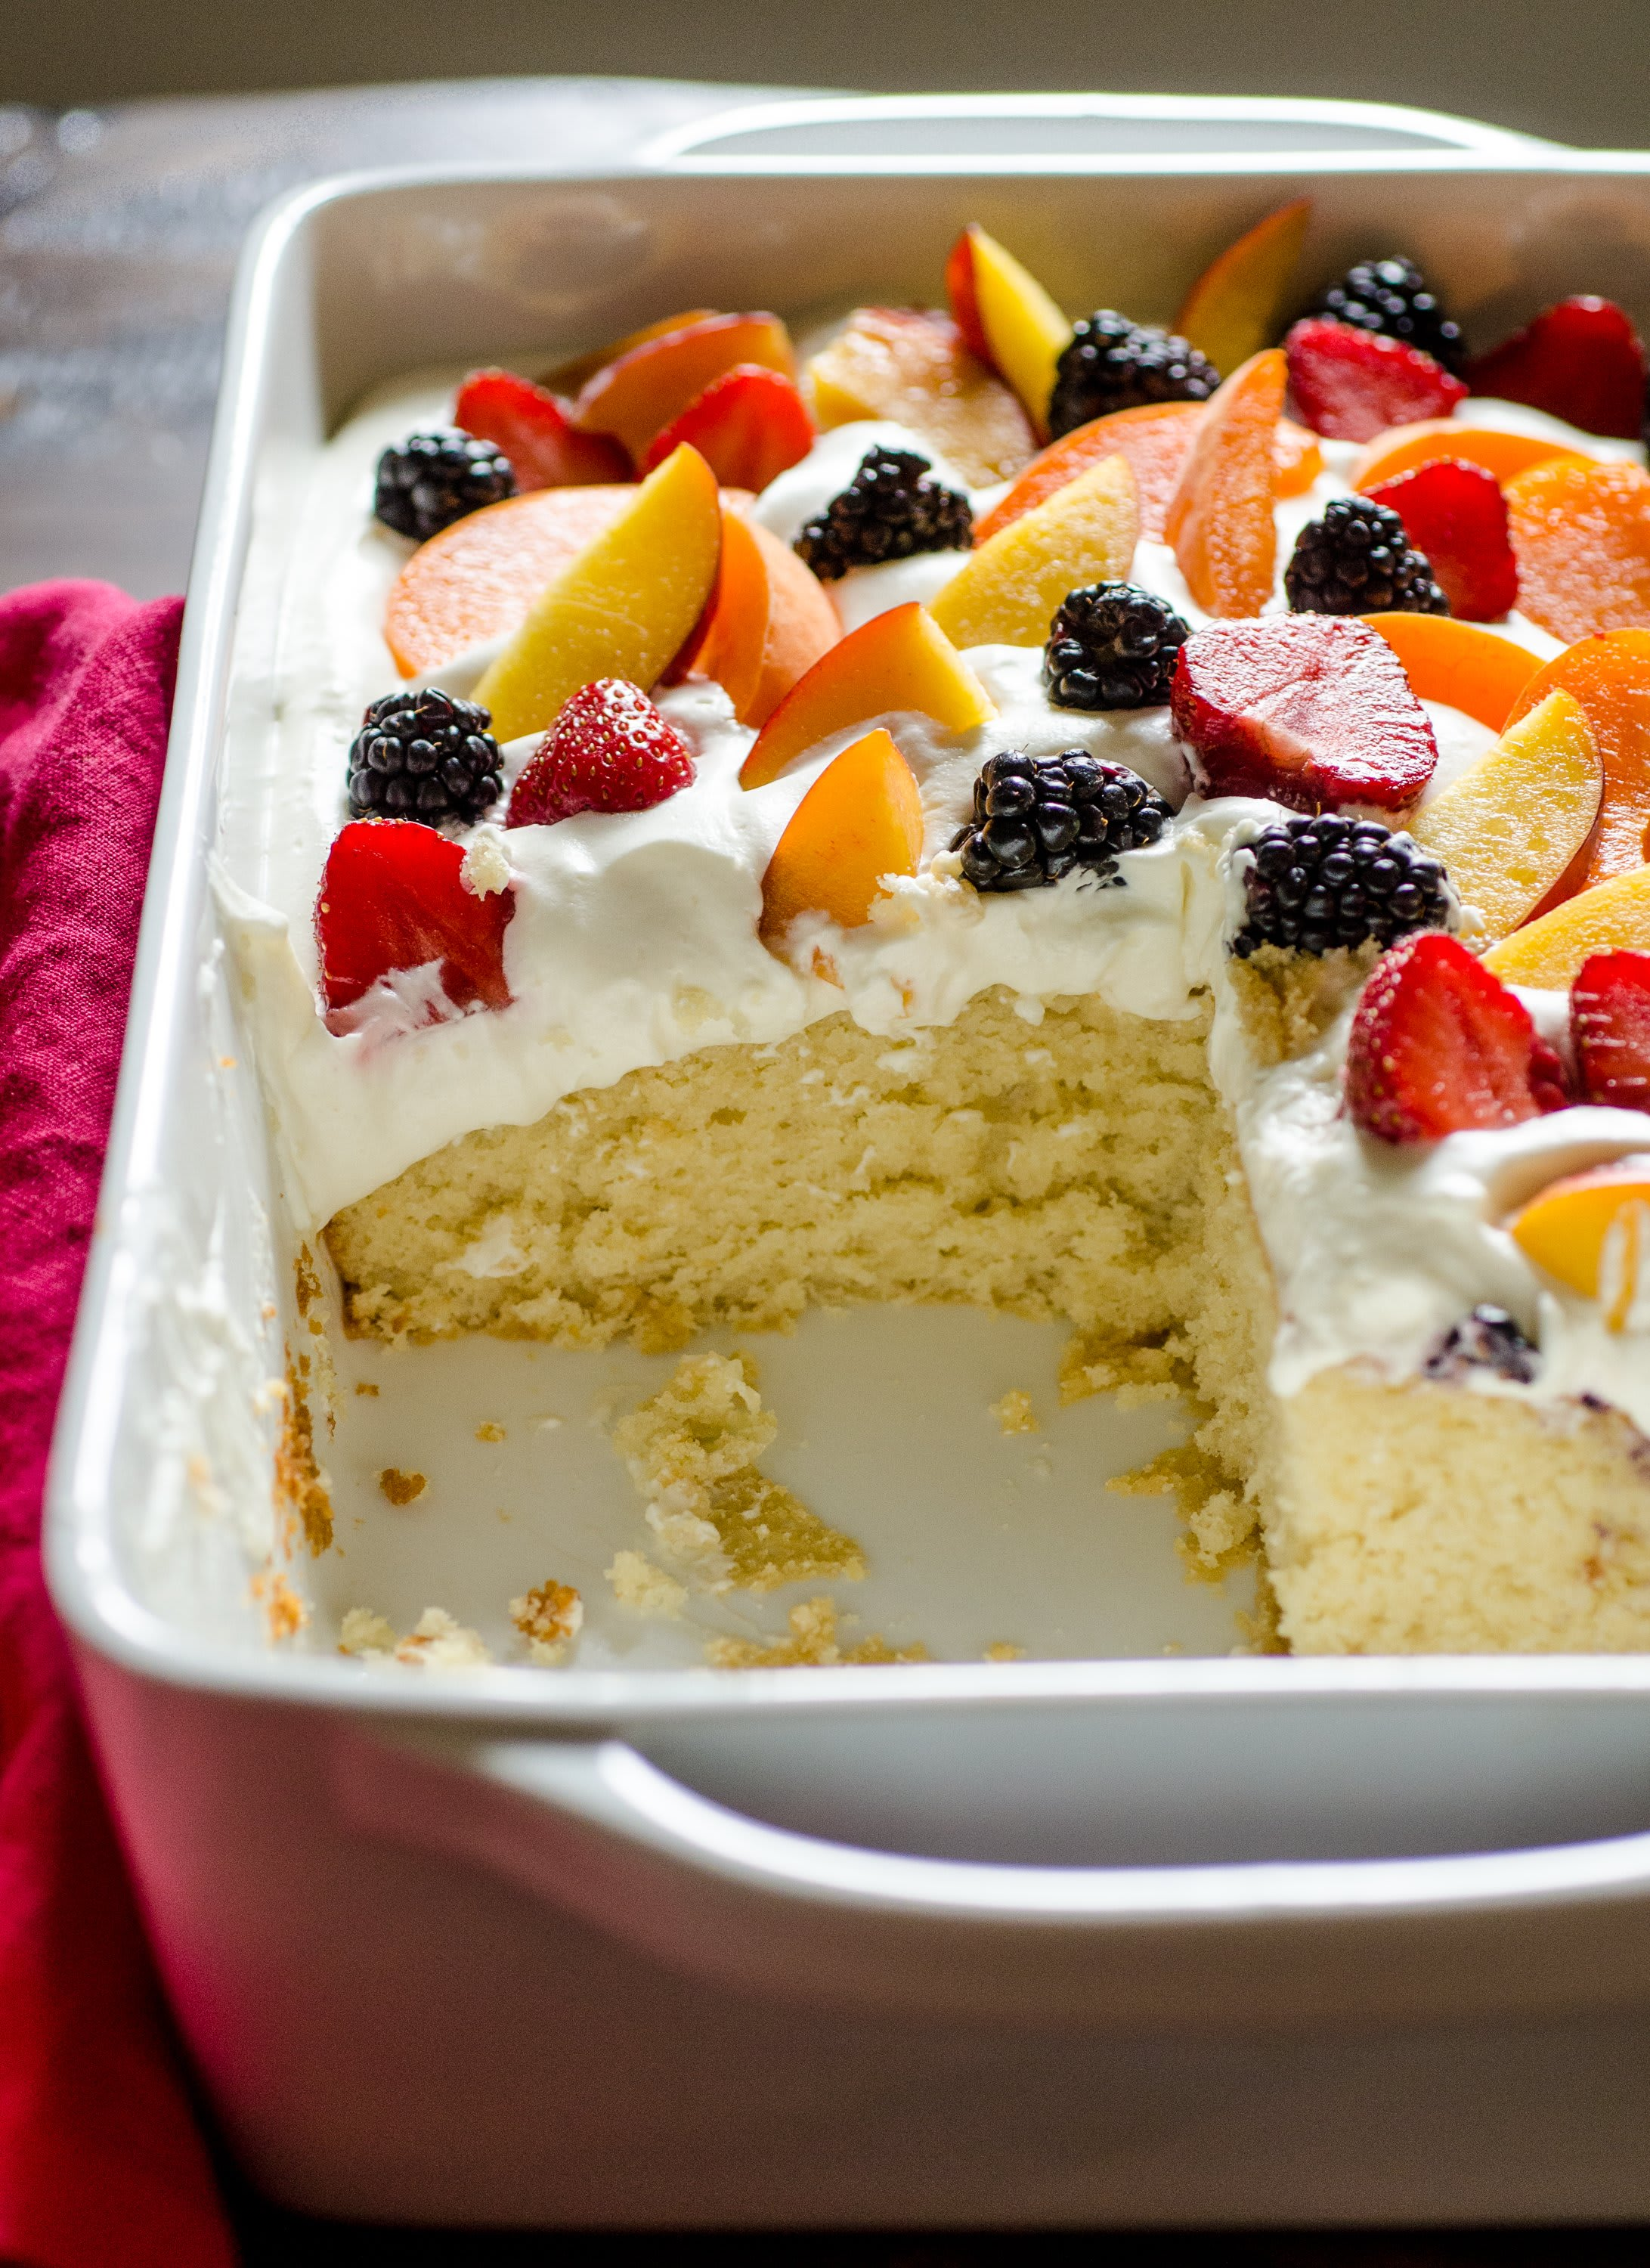 Easy summer cakes - tasty and simple recipes